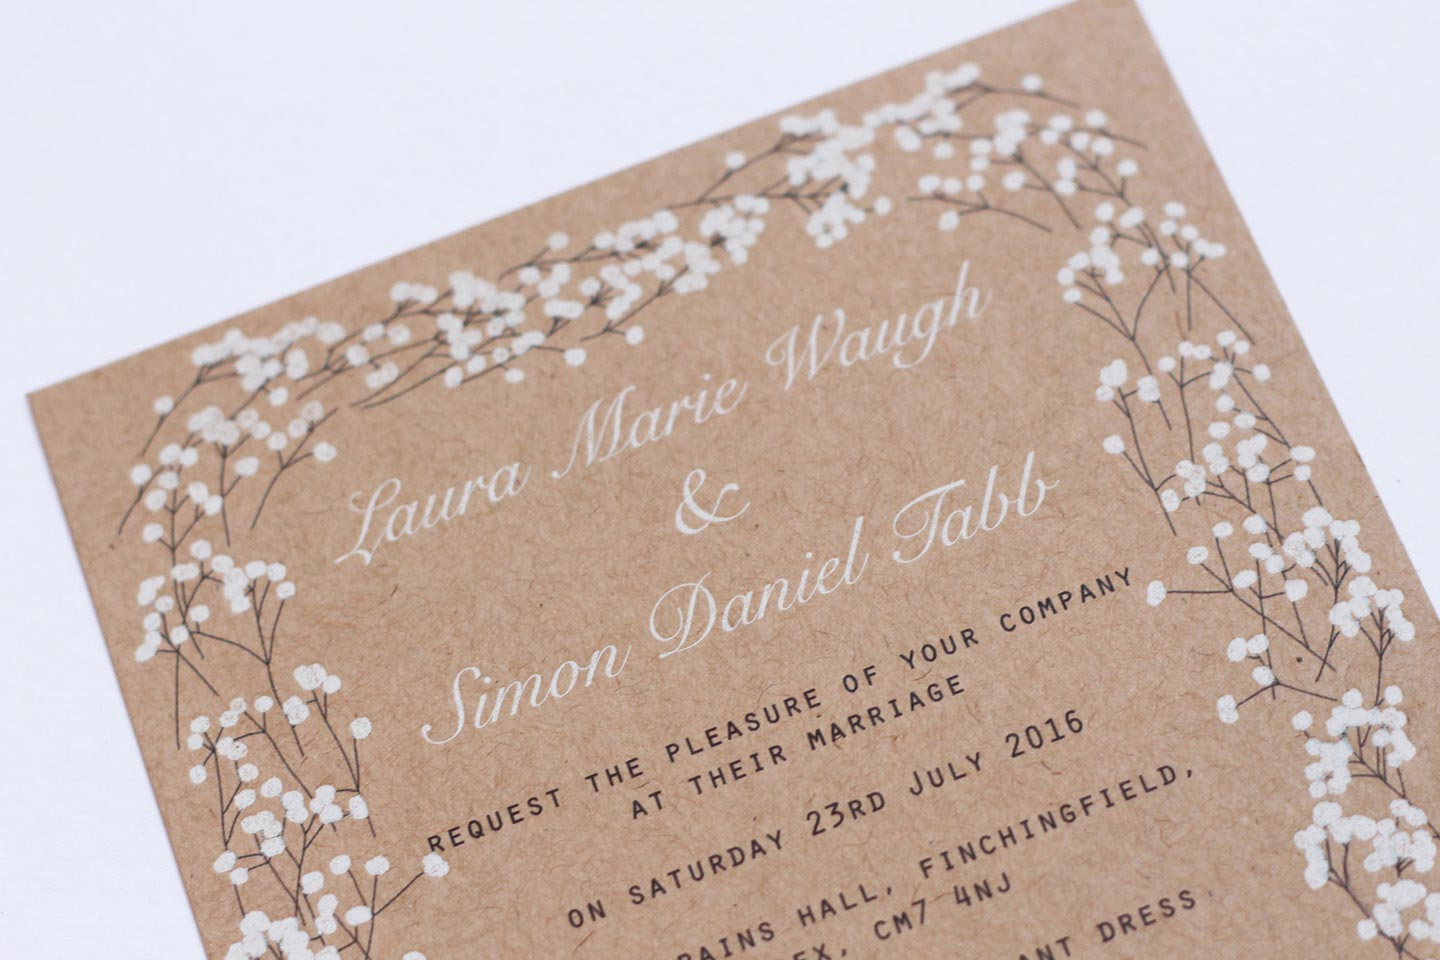 bespoke design your own wedding invitations - How To Design Your Own Wedding Invitations